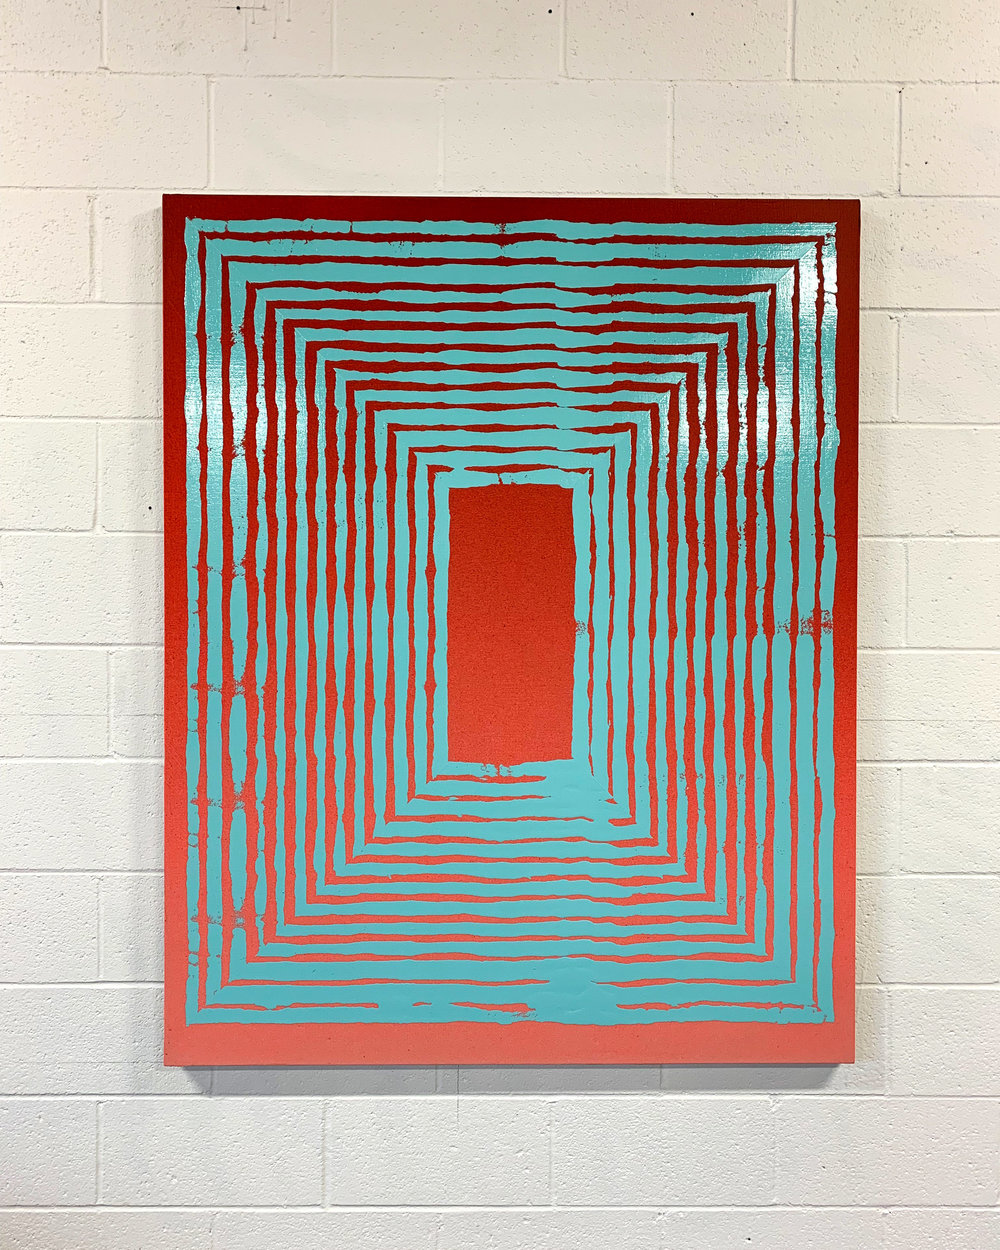 Jason REVOK  -  Hollow_Loop_small1/19_ B, 2019 Acrylic and synthetic polymer on canvas 60h x 48w inches